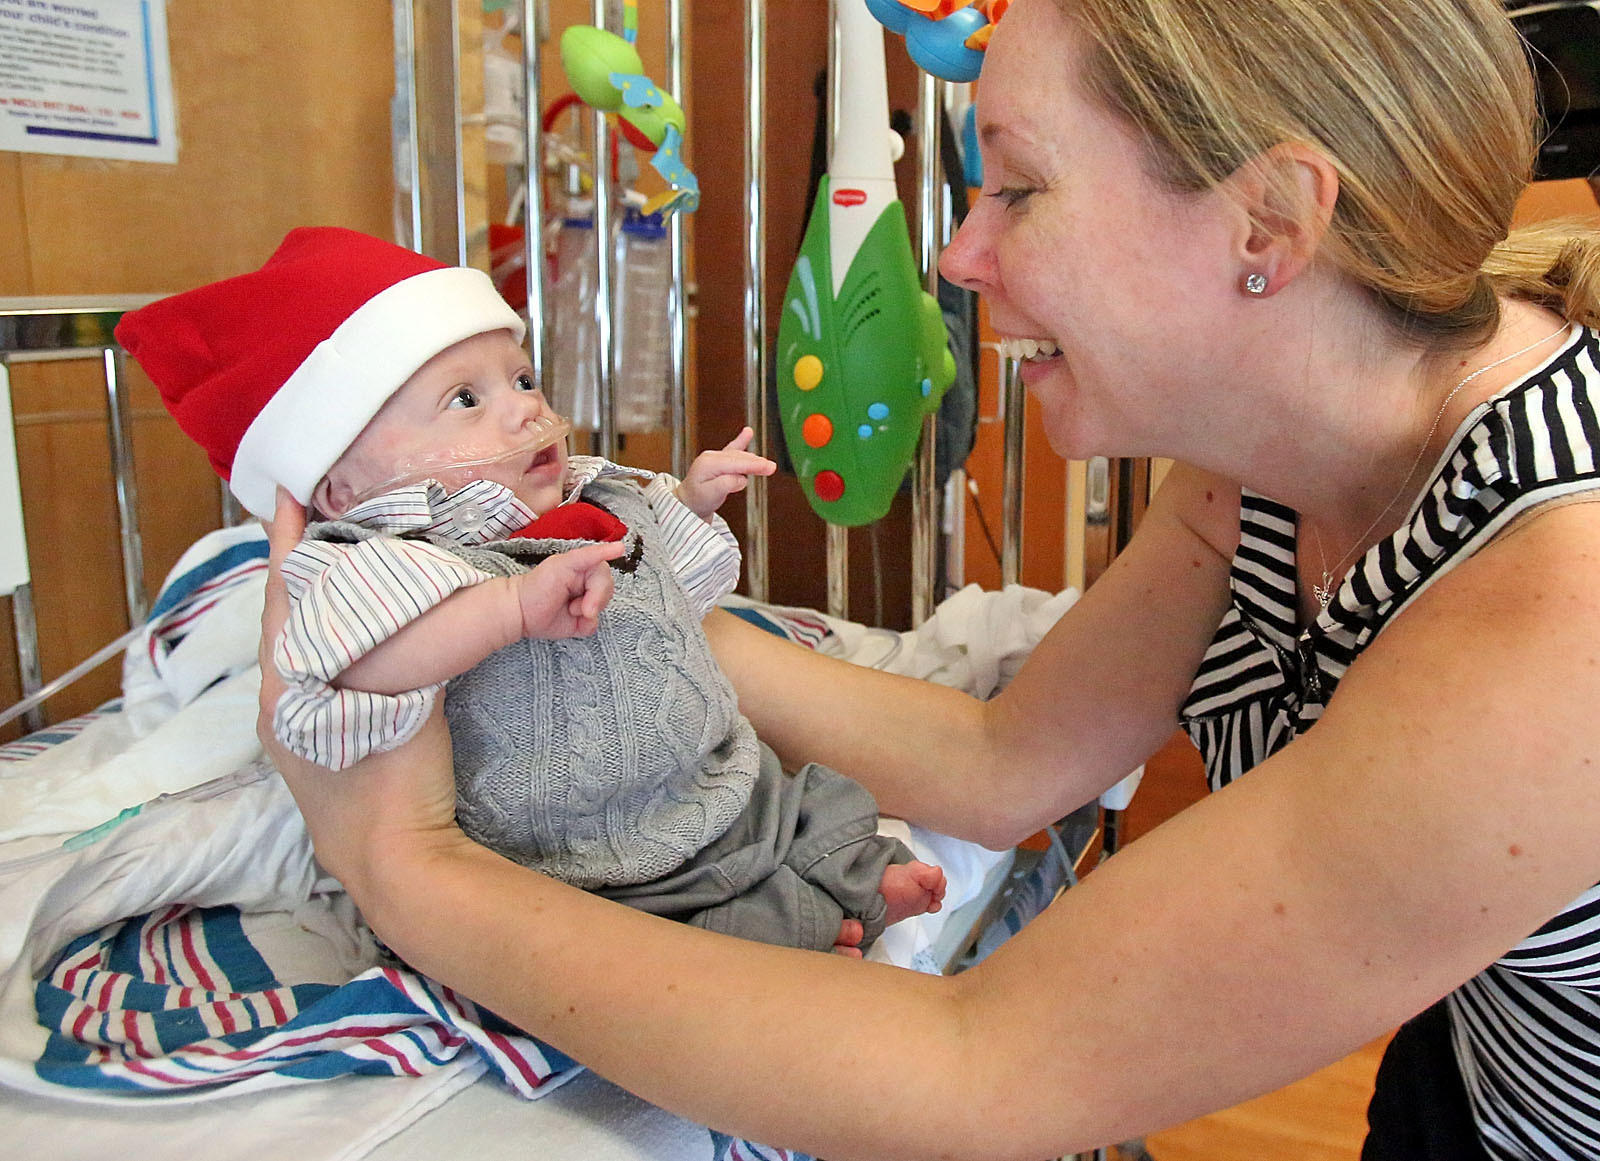 Holly Sorensen, 37, of Winter Garden holds her son Connor at Florida Hospital for Children. Connor is the smallest baby ever born at Florida Hospital, born June 29 at 24 weeks weighing just 14 ounces. Connor is going home with his parents for his first Christmas.